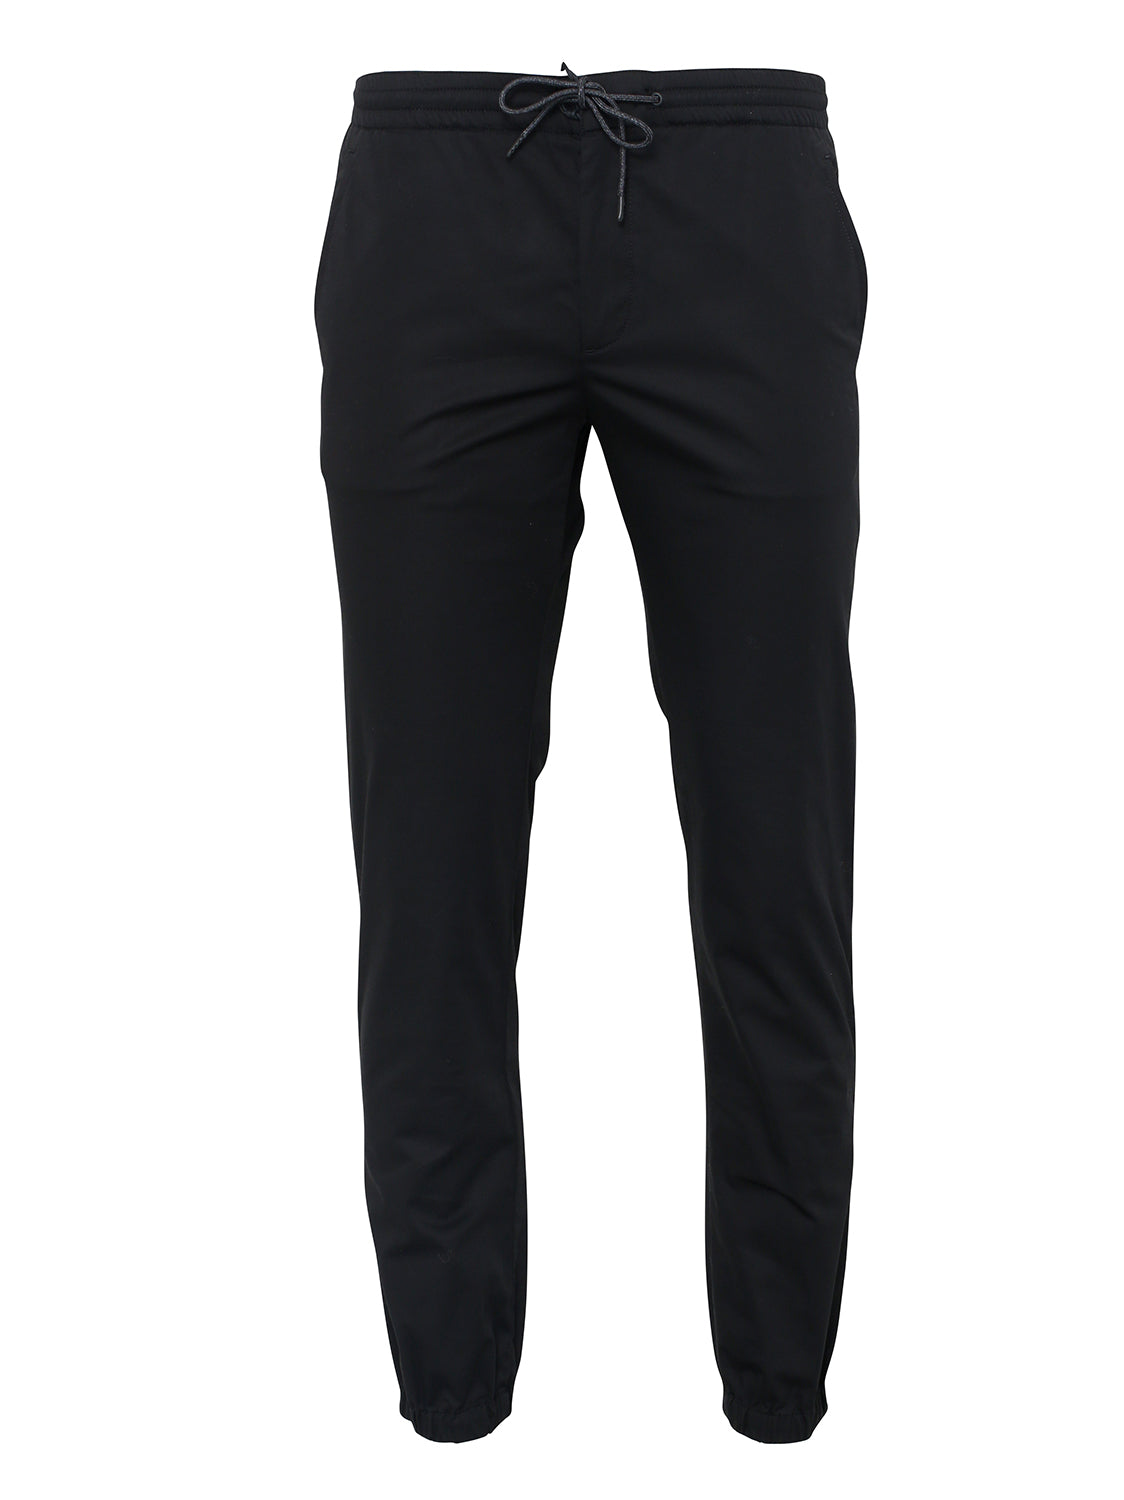 Z Zegna Sport Trouser (Black) - Union 22